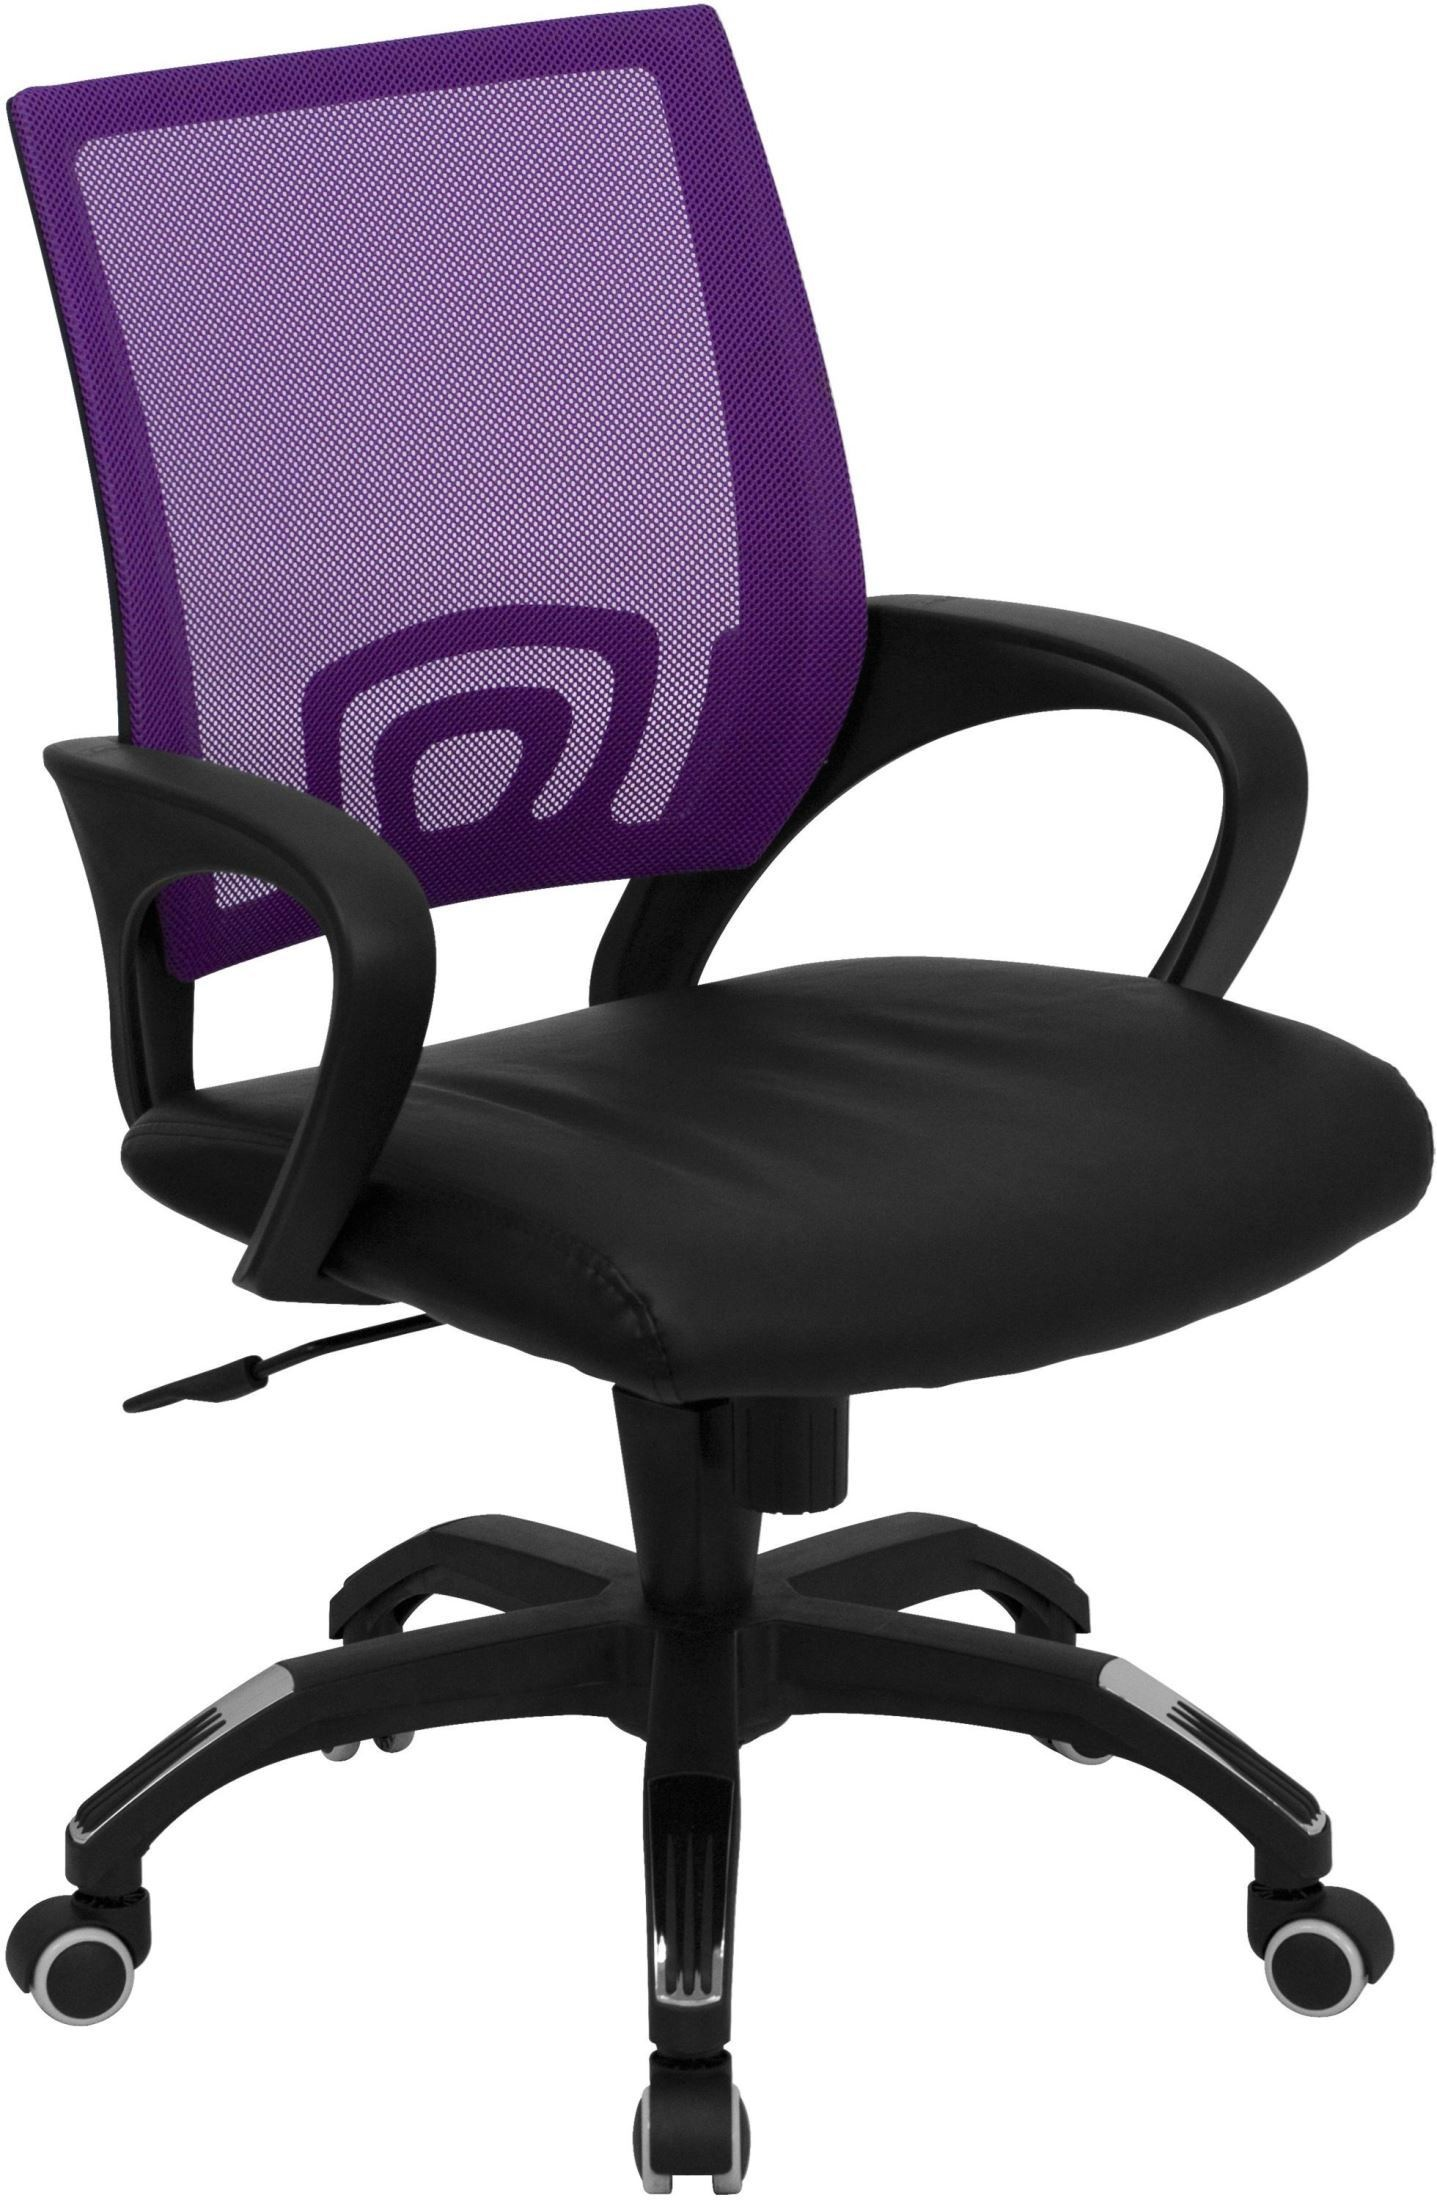 purple swivel chair movie bean bag mid back computer with black seat min order